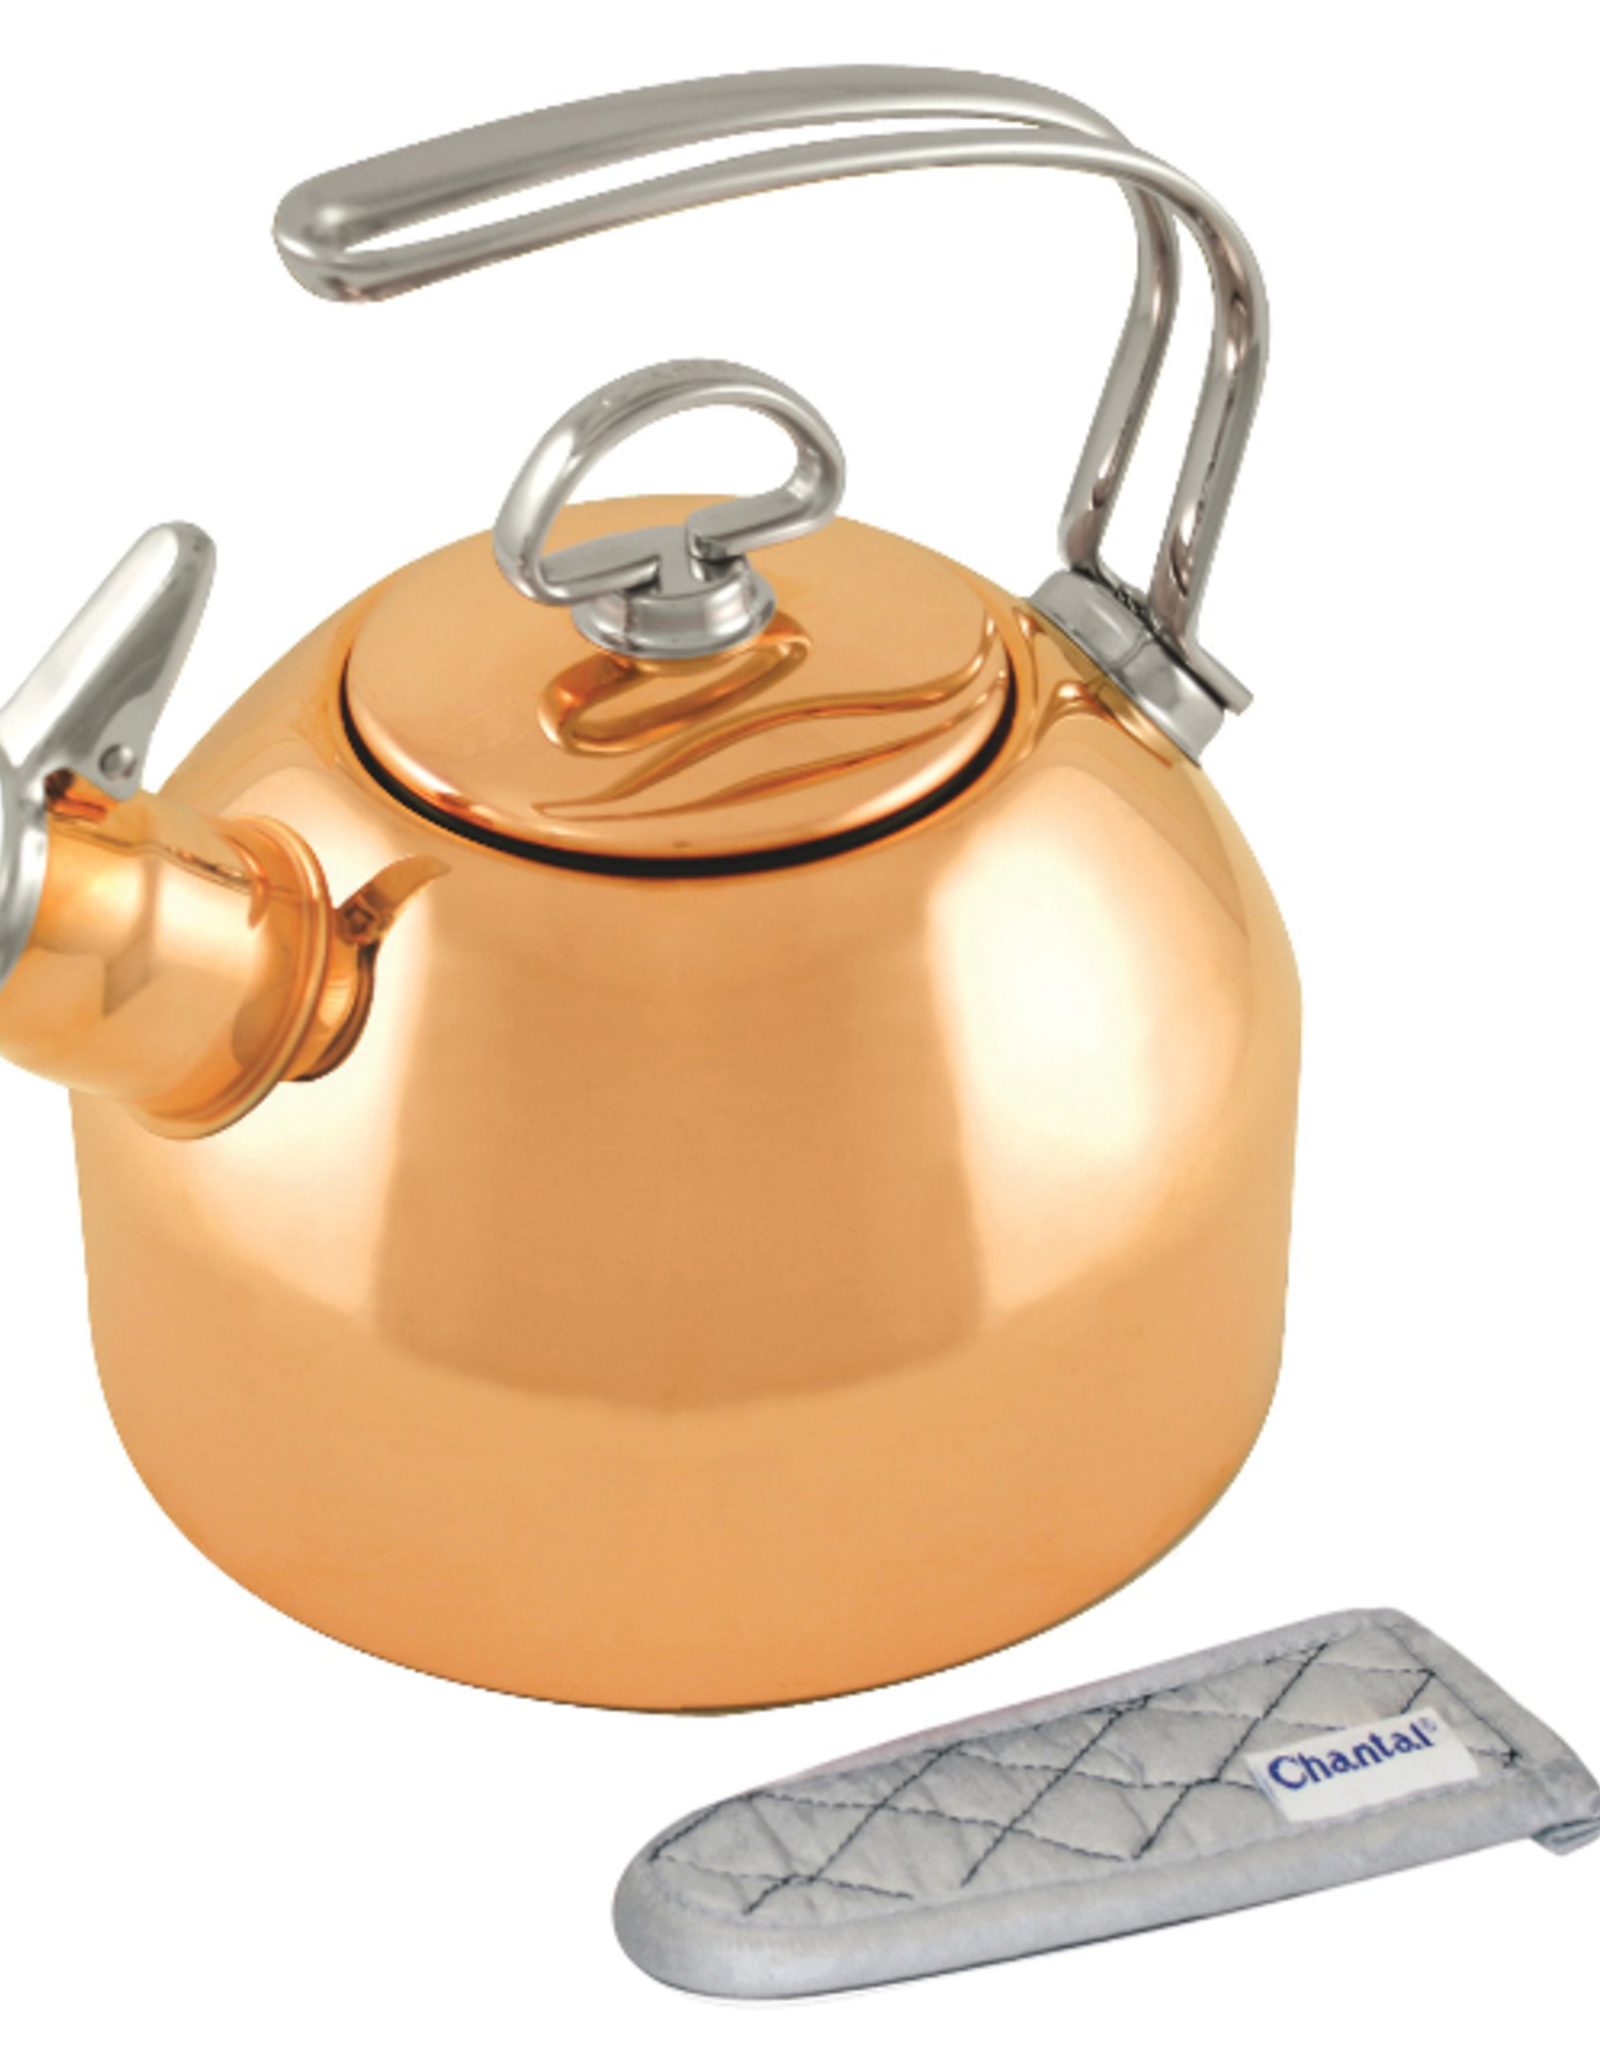 Chantal Classic Copper Whistling Teakettle